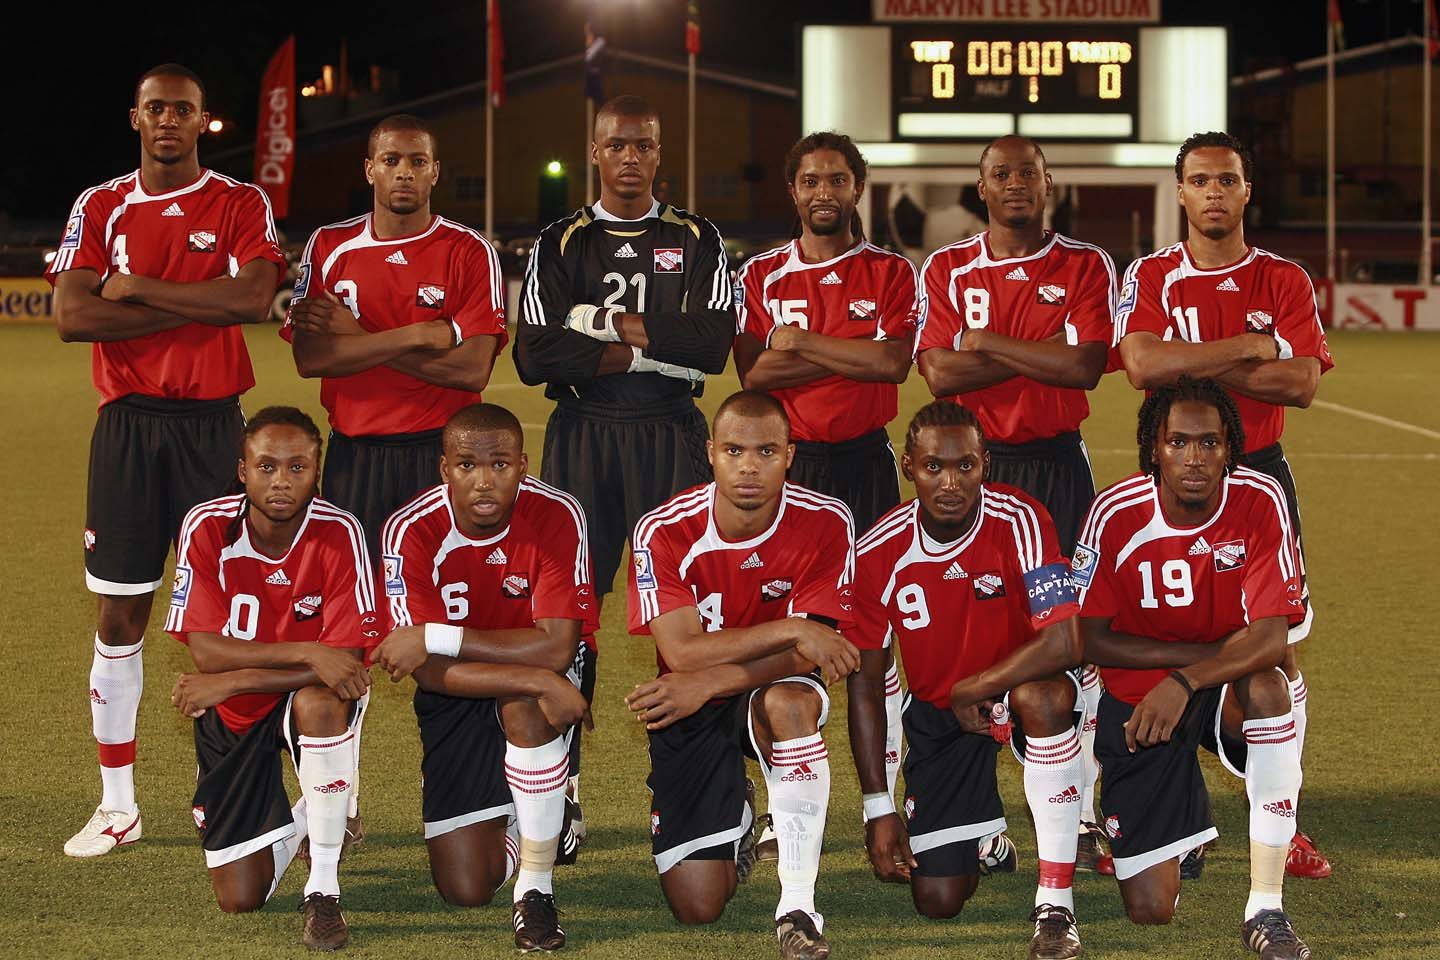 Trinidad-and-Tobago-06-08-adidas-home-kit-red-black-white-line-up.jpg